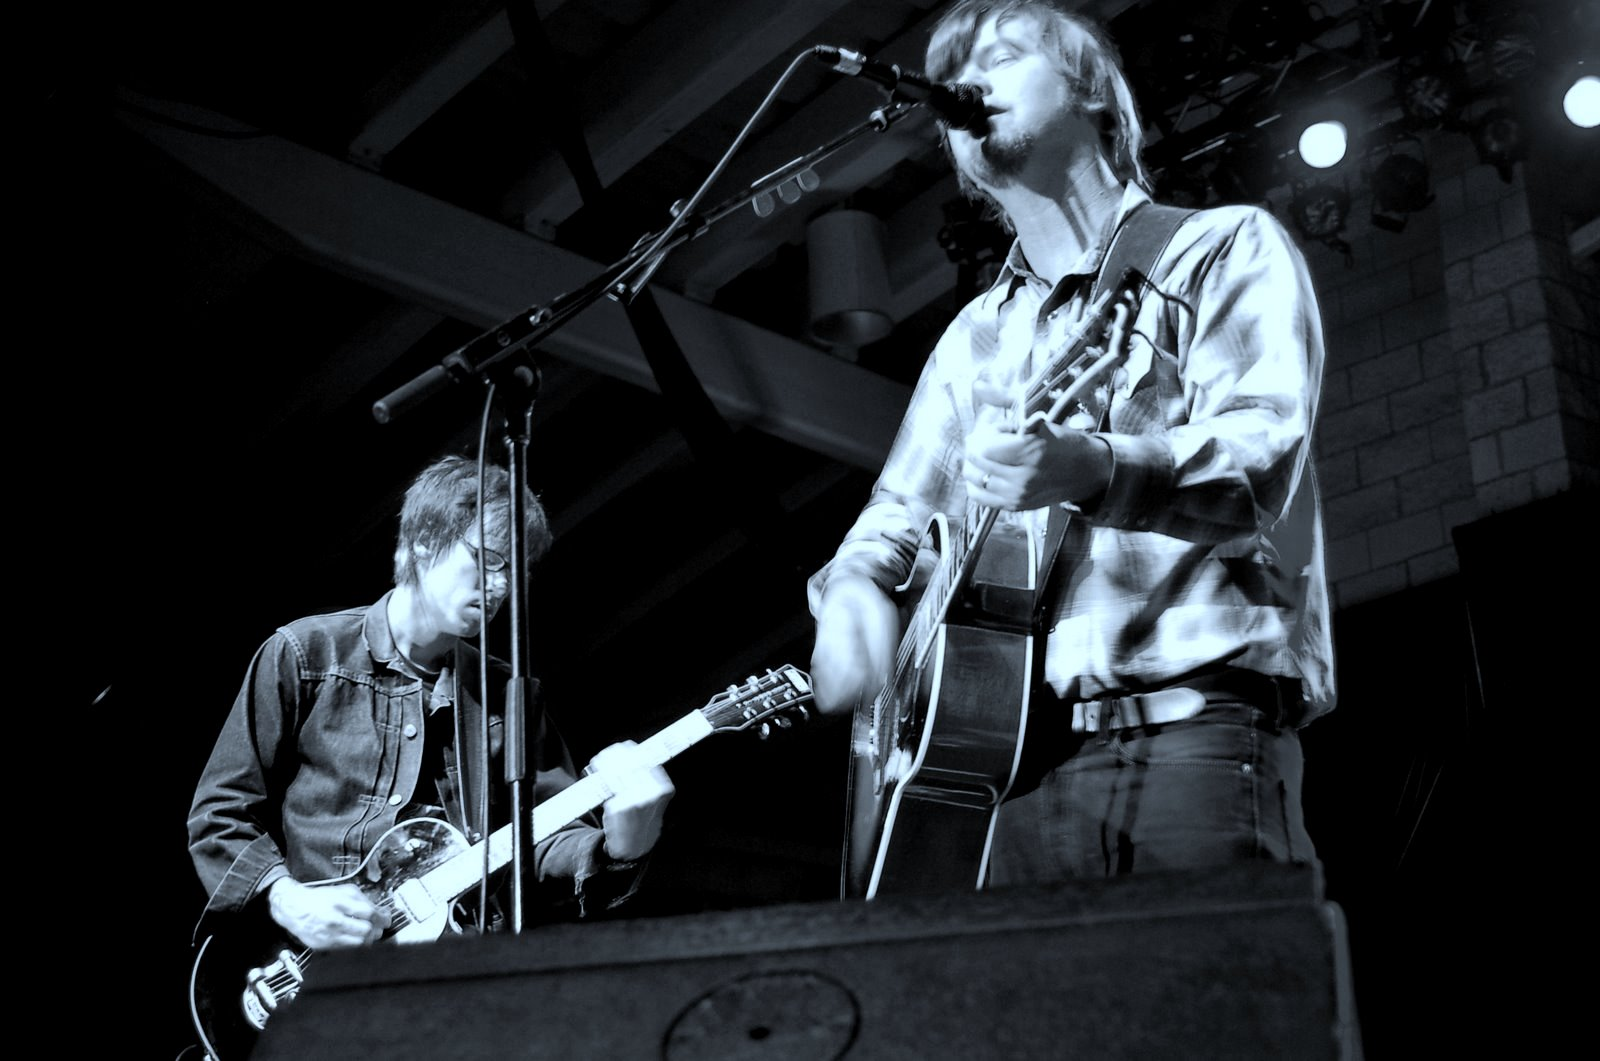 Review – Son Volt at Summerfest, July 7th, 2007